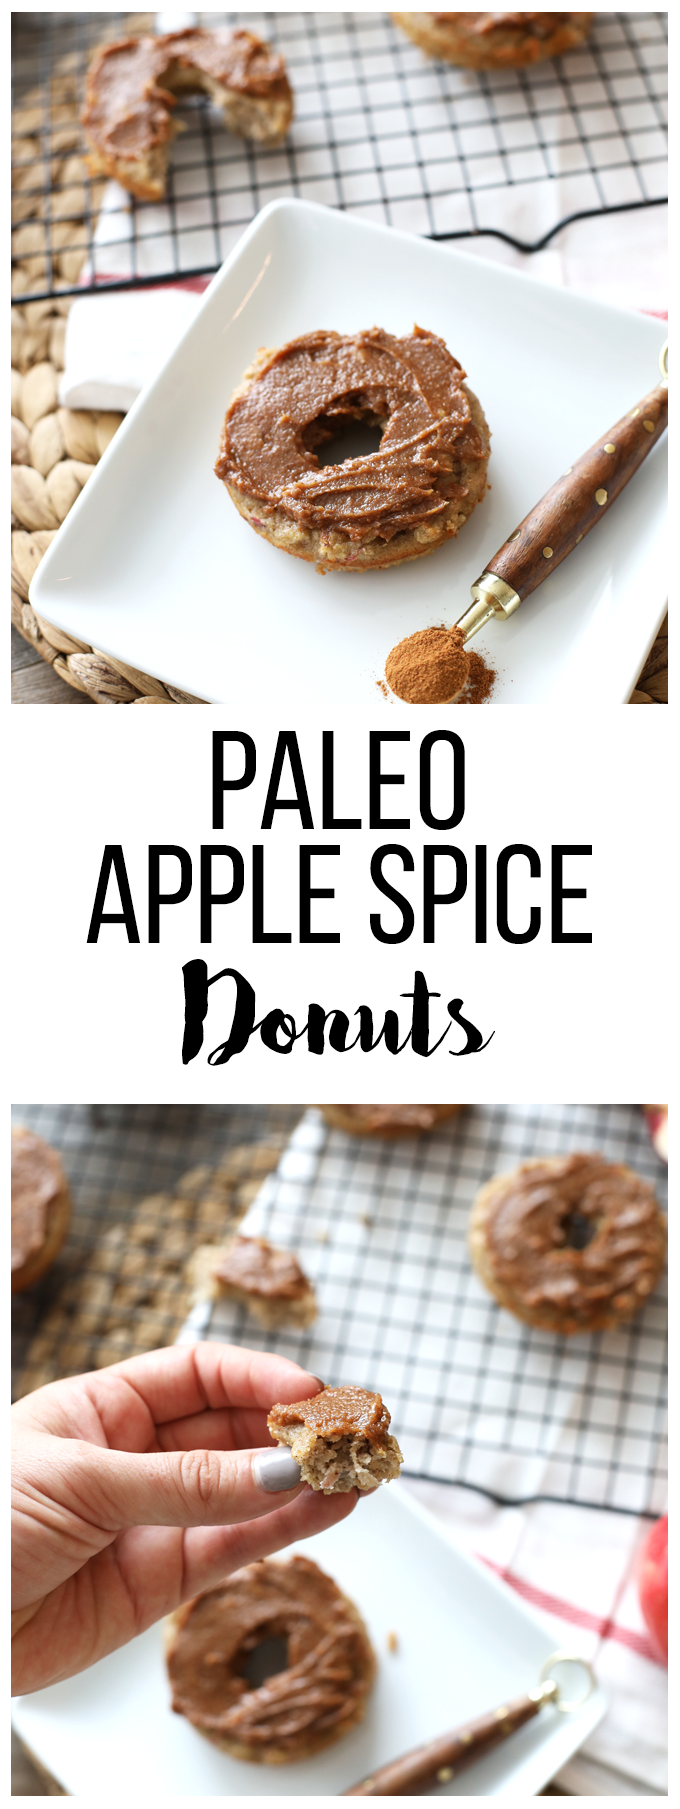 These Paleo Apple Spice Donuts are baked in a donut pan and so easy to make! They are paleo and have a clean and tasty frosting!